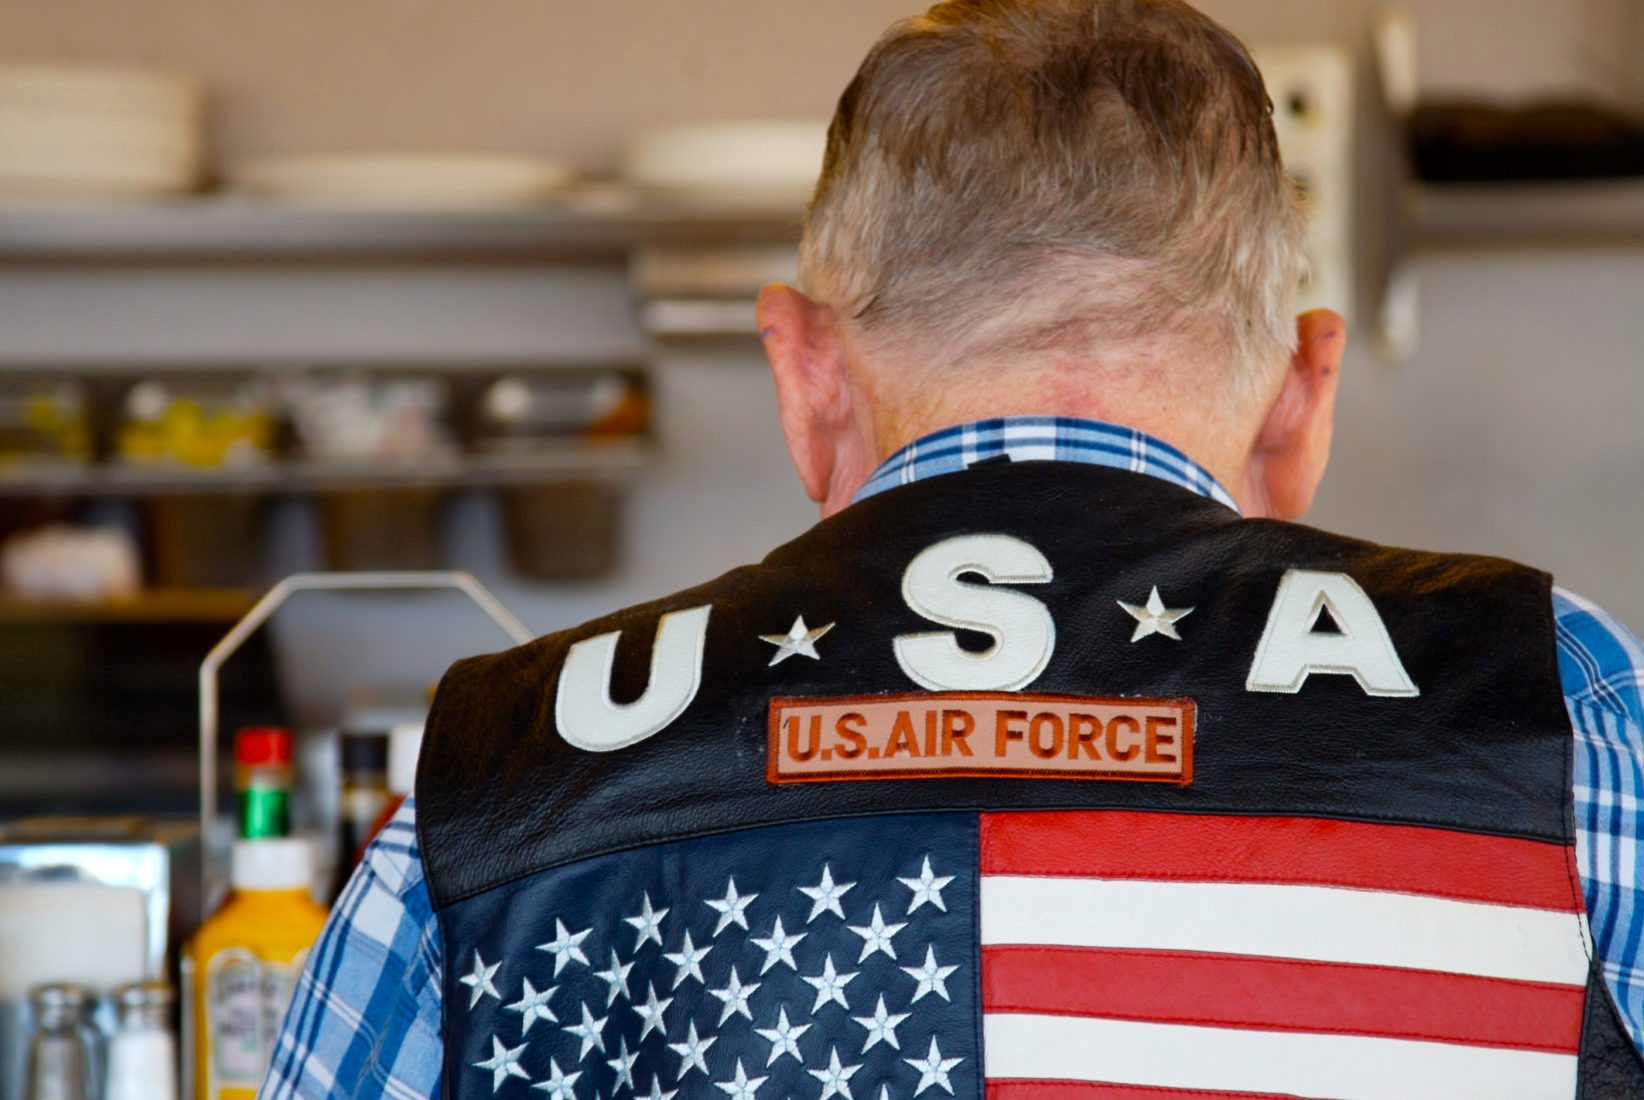 Man Wearing Air Force Vest